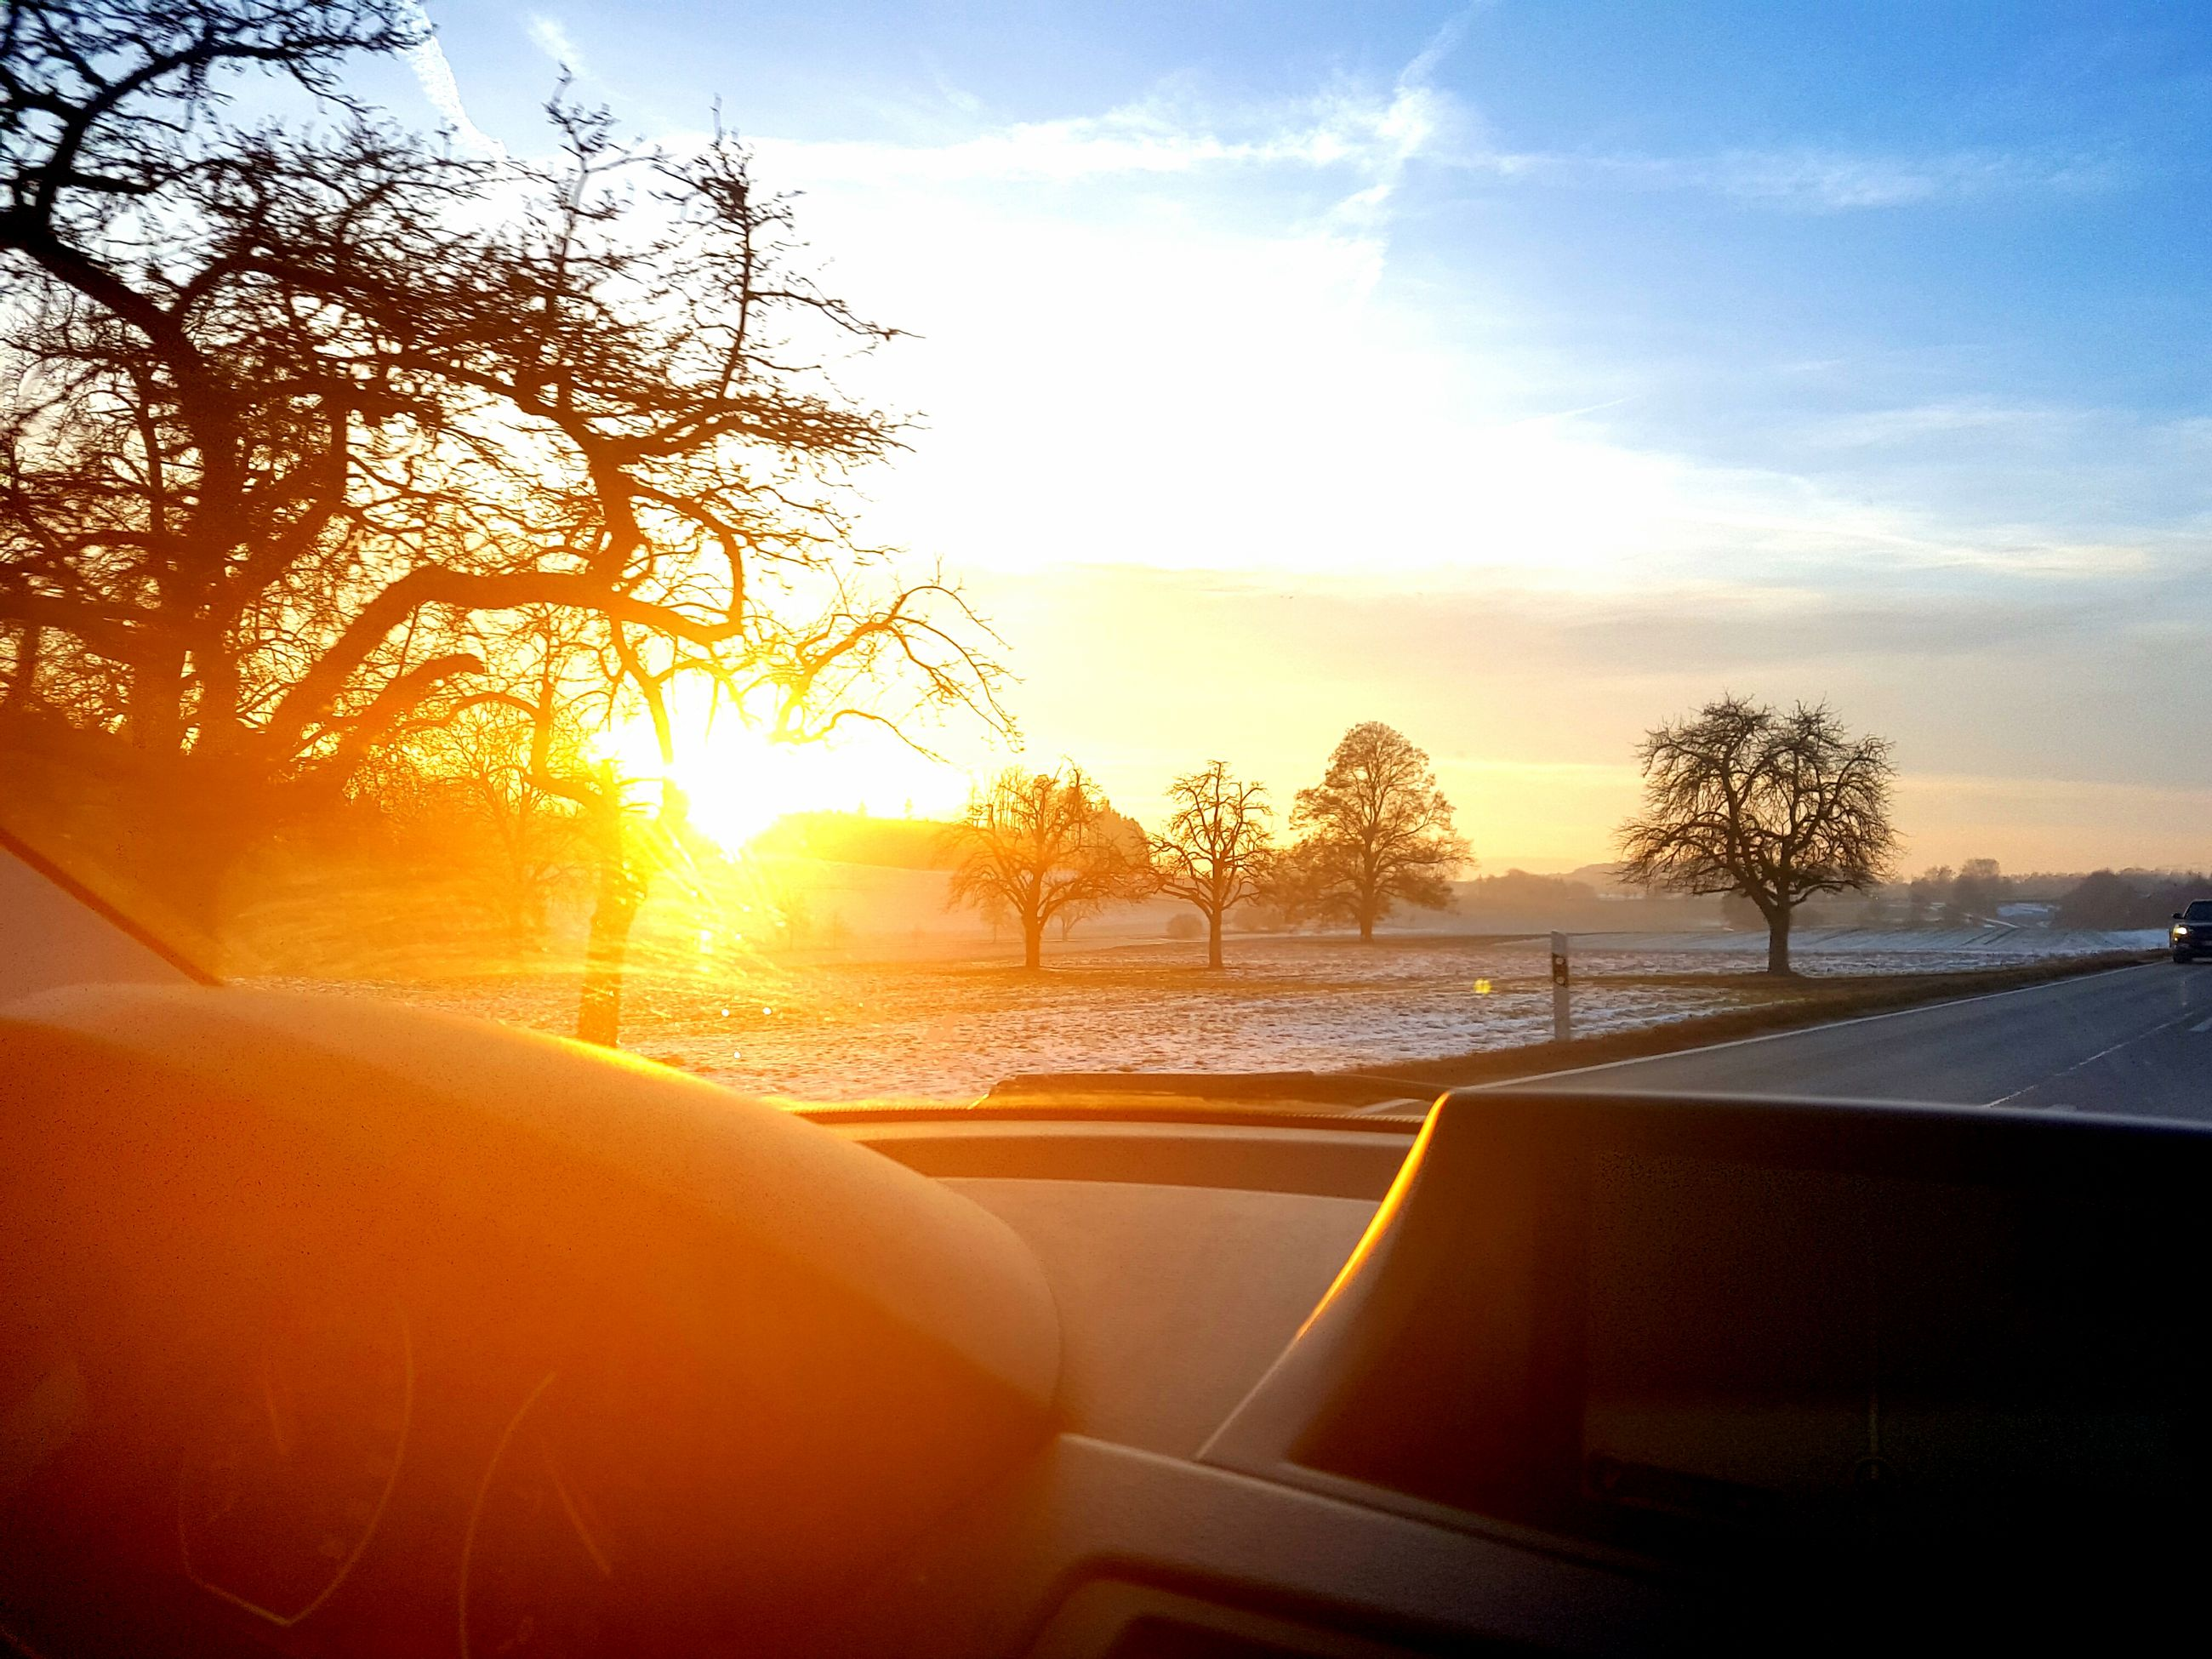 car, sunset, transportation, windshield, travel, car interior, vehicle interior, land vehicle, mode of transport, sky, driving, road, dashboard, car roof, tree, nature, no people, windscreen, beauty in nature, close-up, day, vehicle mirror, outdoors